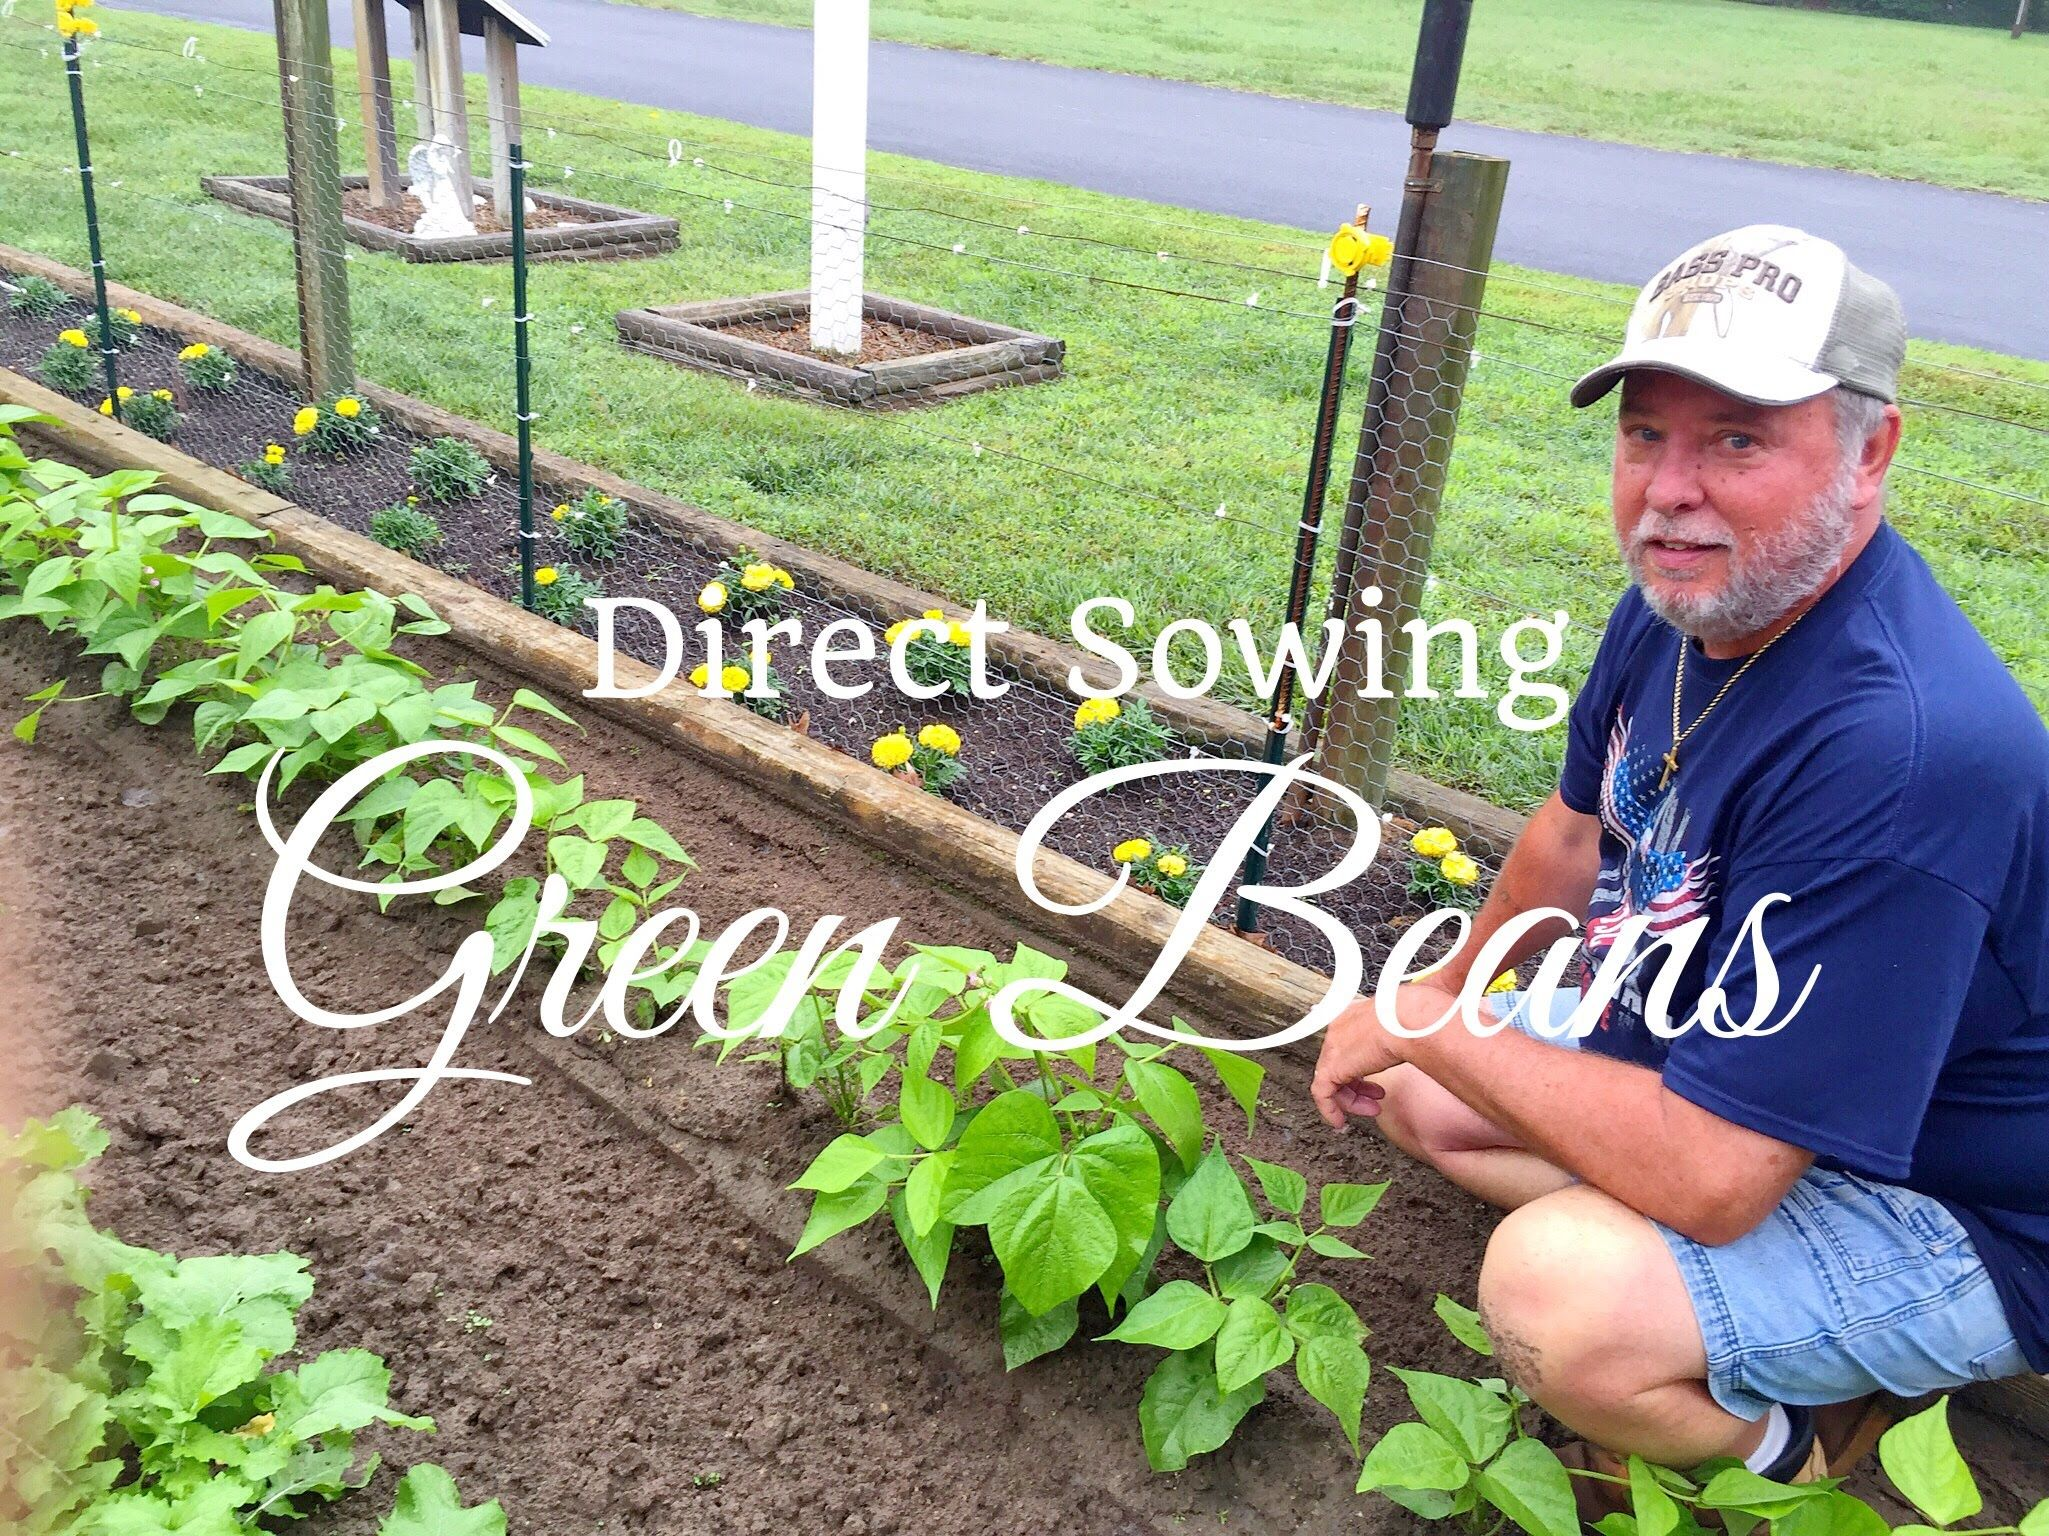 Hd How To Grow Green Beans Snap Beans By Direct Sowing Subscription Free Growing Green Beans Growing Beans Snap Beans